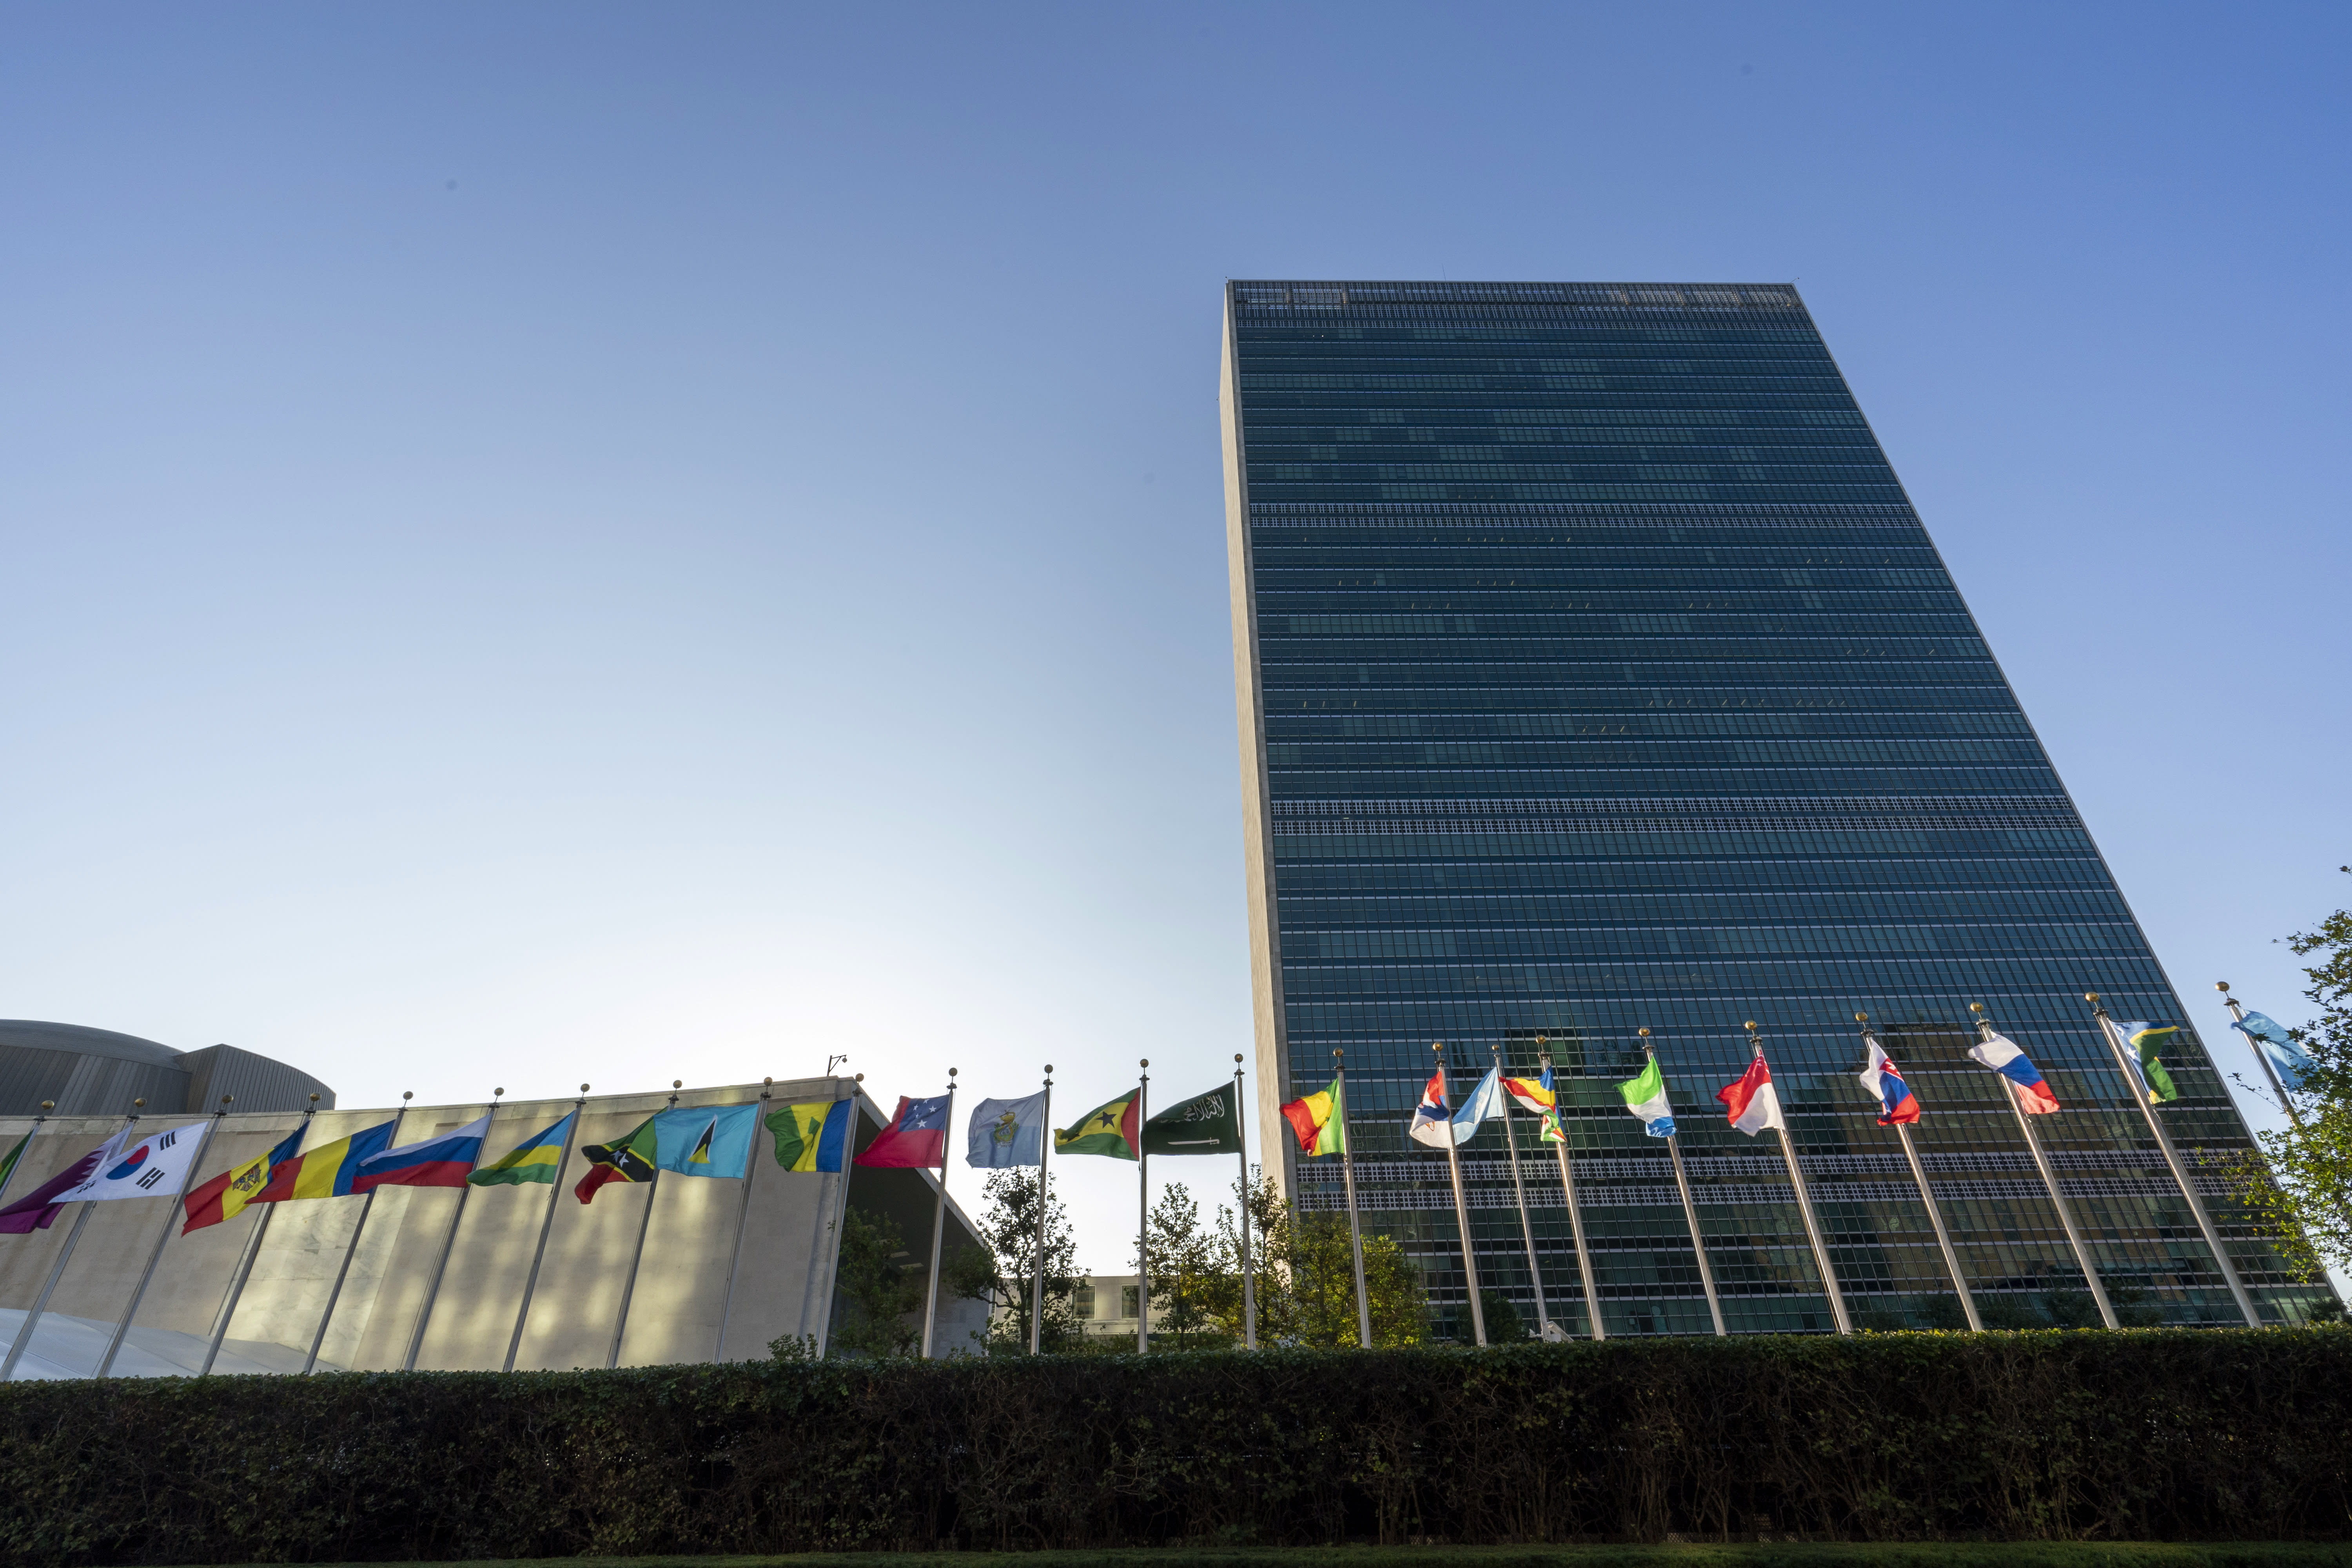 """Member state flags fly outside the United Nations headquarters during the 75th session of the United Nations General Assembly, Wednesday, Sept. 23, 2020. This year's annual gathering of world leaders at U.N. headquarters will be almost entirely """"virtual."""" Leaders have been asked to pre-record their speeches, which will be shown in the General Assembly chamber, where each of the 193 U.N. member nations are allowed to have one diplomat present. (AP Photo/Mary Altaffer)"""